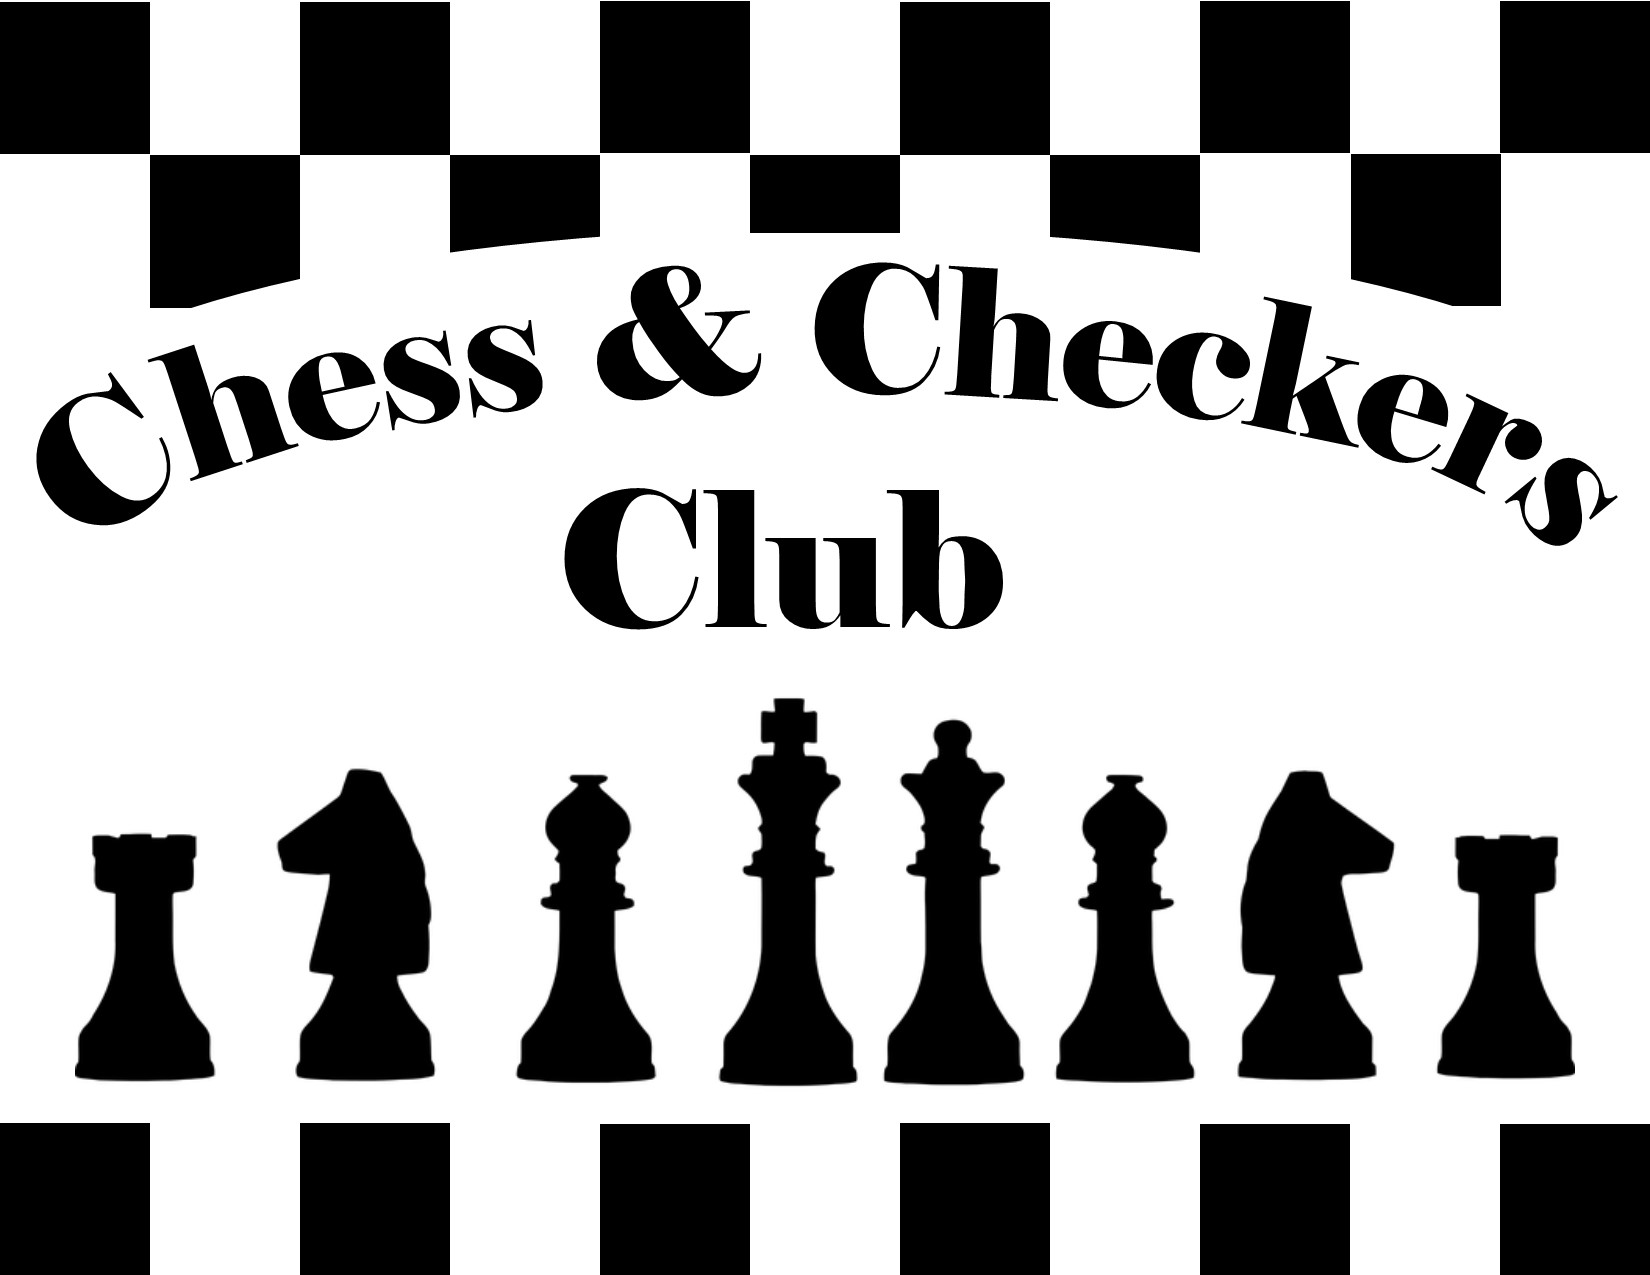 Chess & Checkers Club